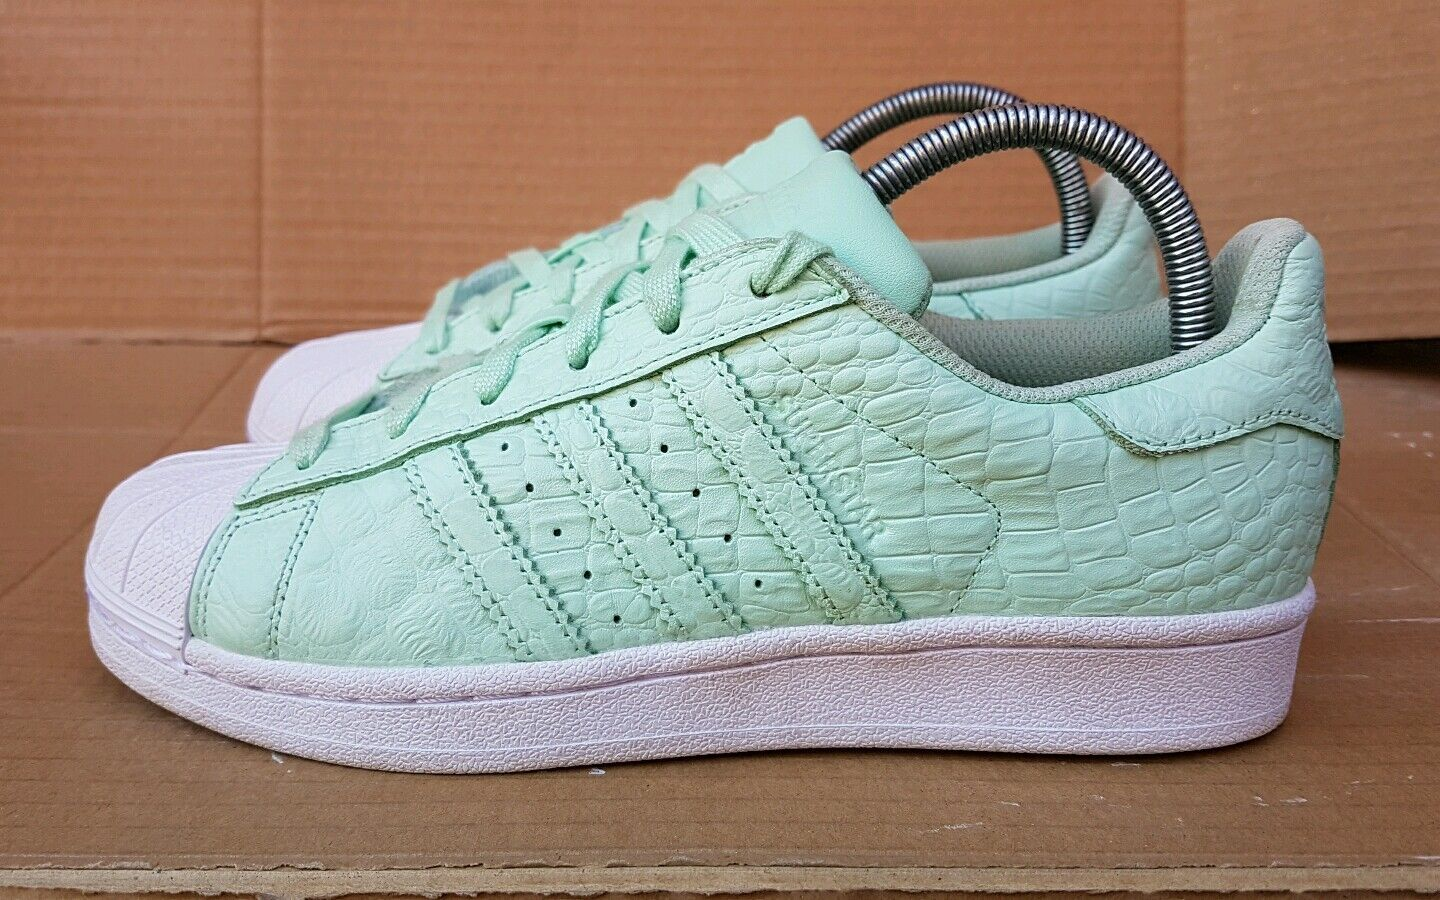 ADIDAS SUPERSTAR TRAINERS SIZE 5 UK GORGEOUS MINT GREEN REPTILE SKIN GORGEOUS UK COLOUR f306e0